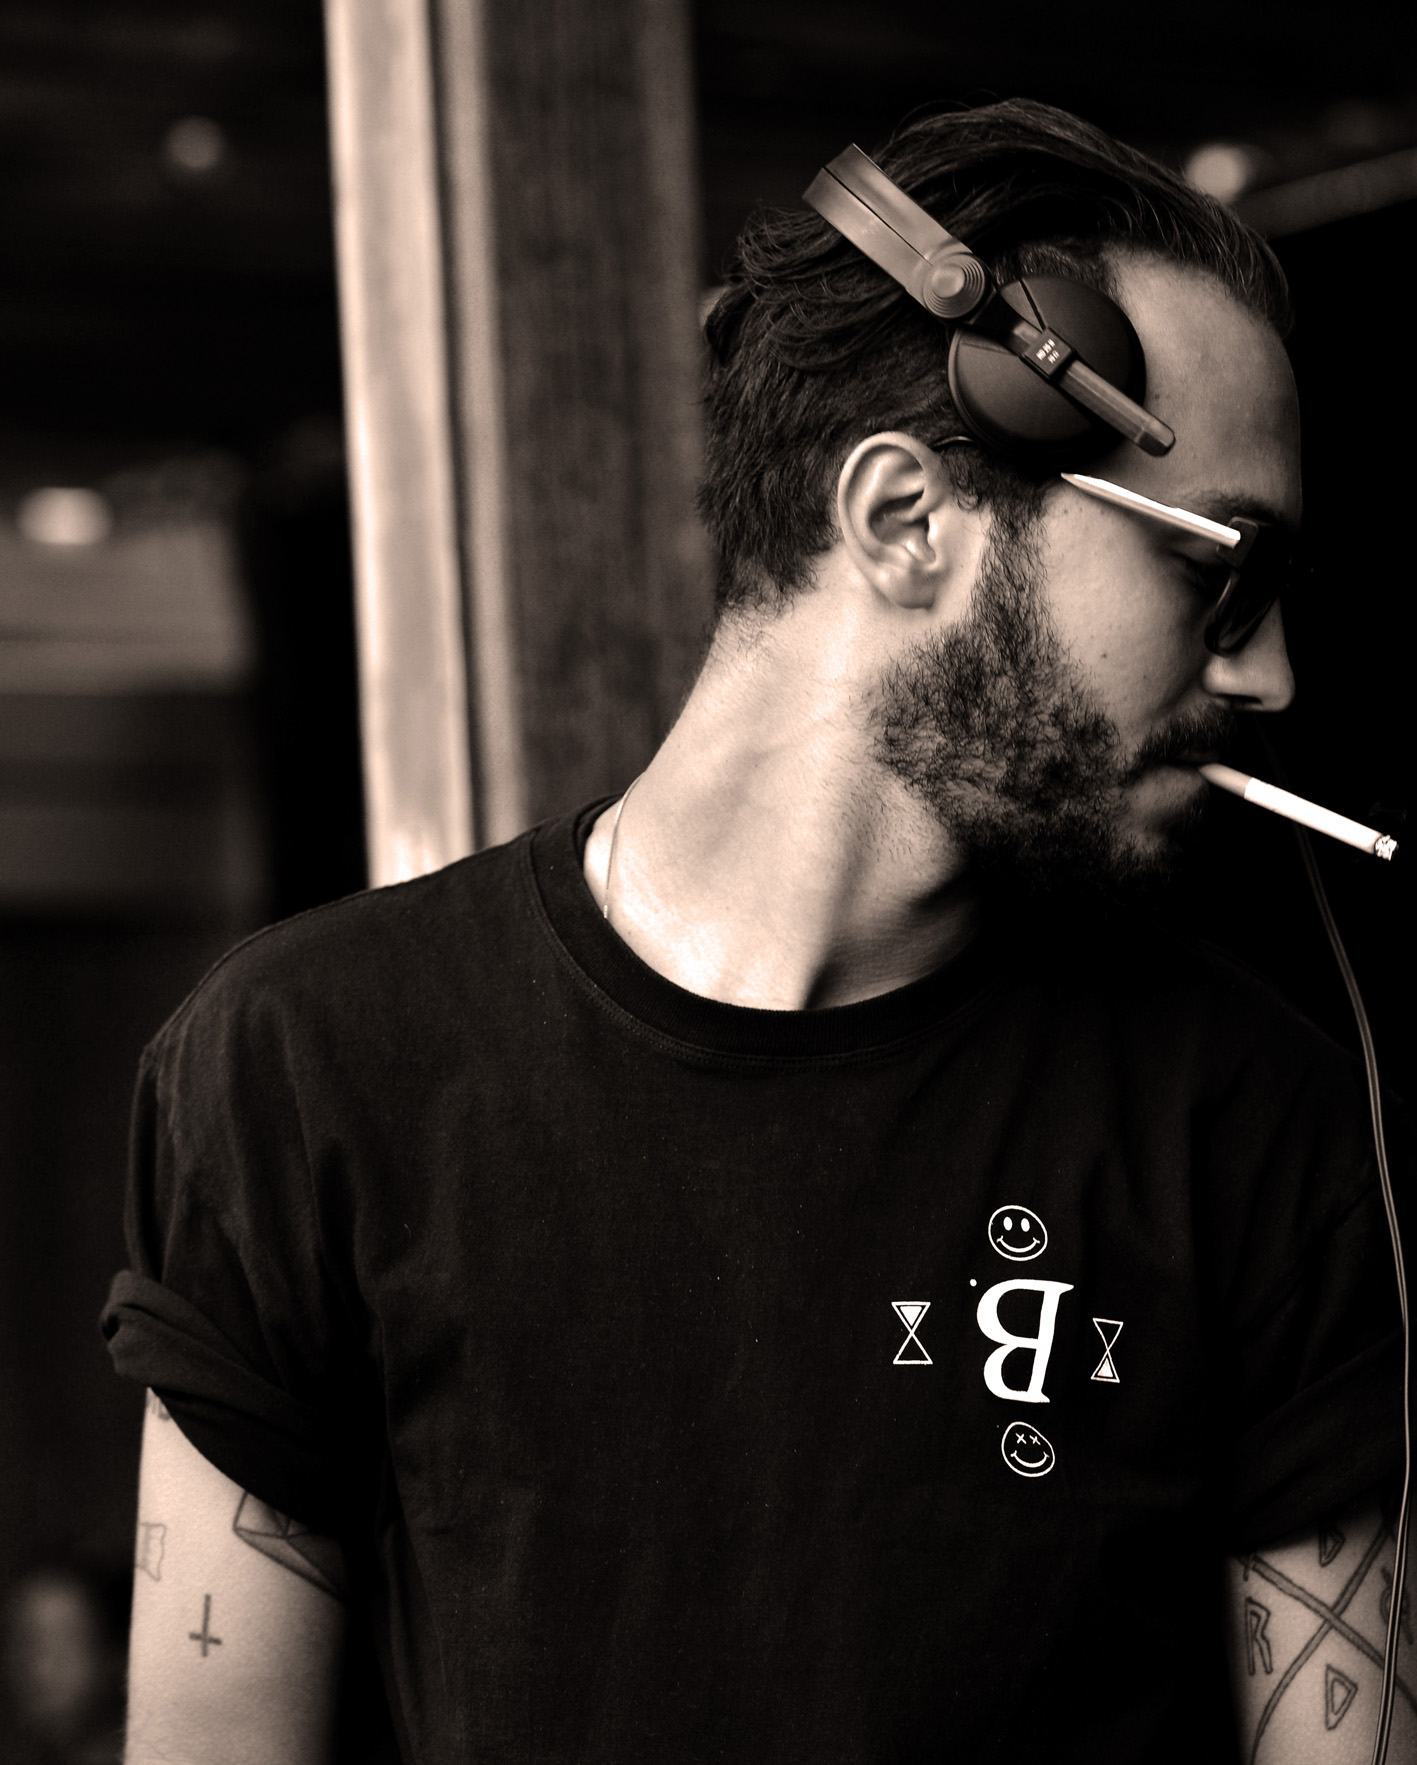 « Make It Bun Dem » : Skrillex ft. Damien Marley remixé par Brodinski